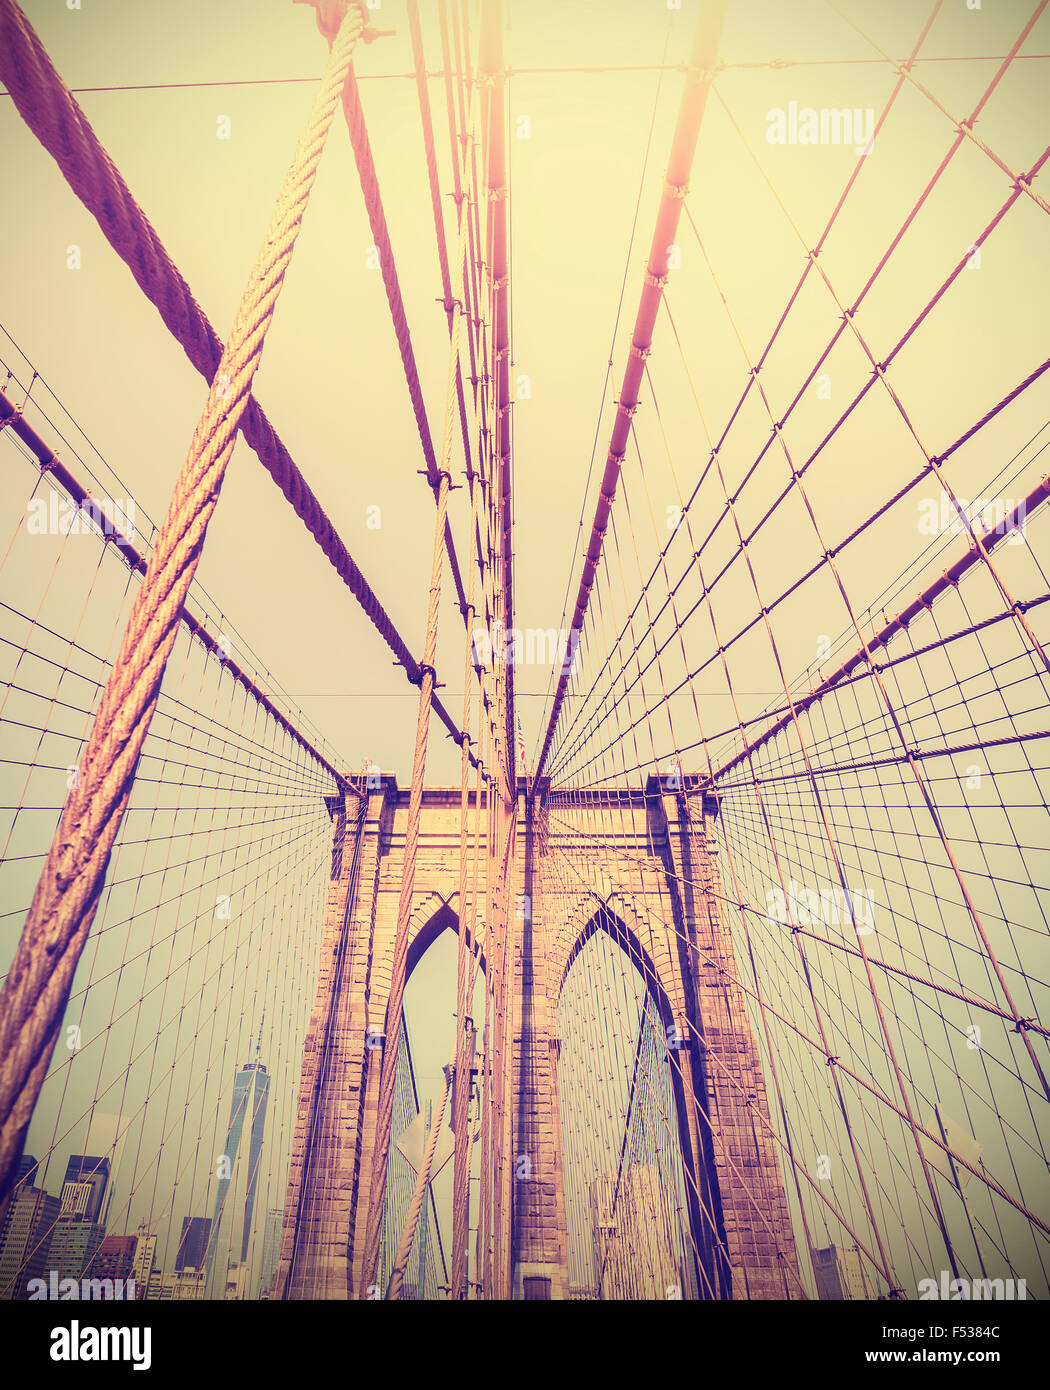 Vintage toned photo of the Brooklyn Bridge, NYC, USA. - Stock Image